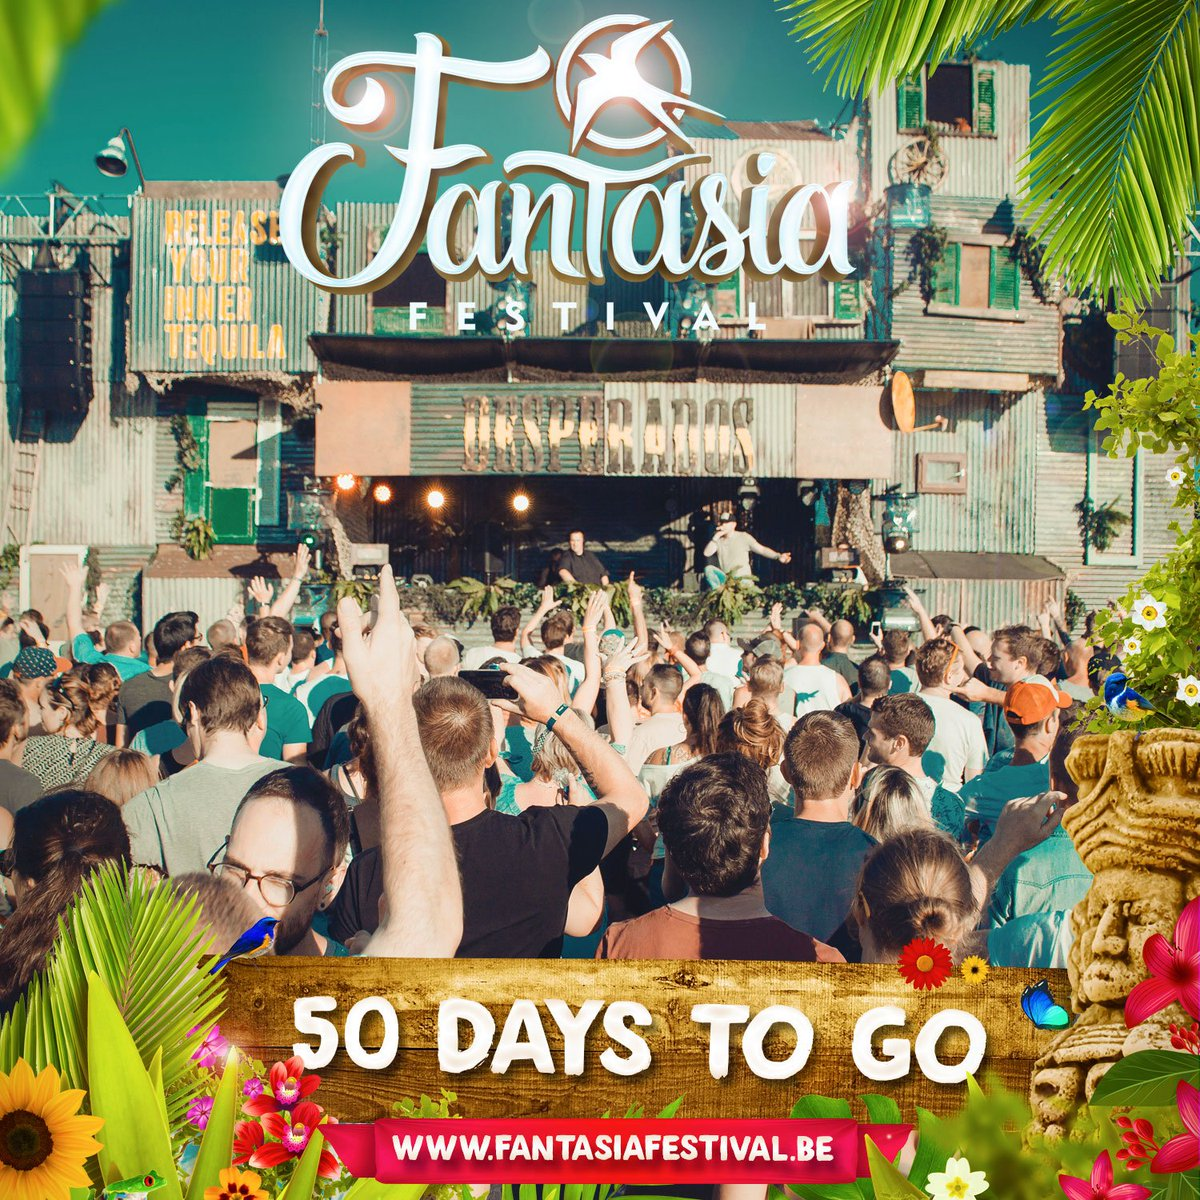 645a227e5 Get your regular ticket NOW for only €15!  http   www.fantasiafestival.be tickets Remember that Fantasia Festival 2017  was SOLD OUT!!